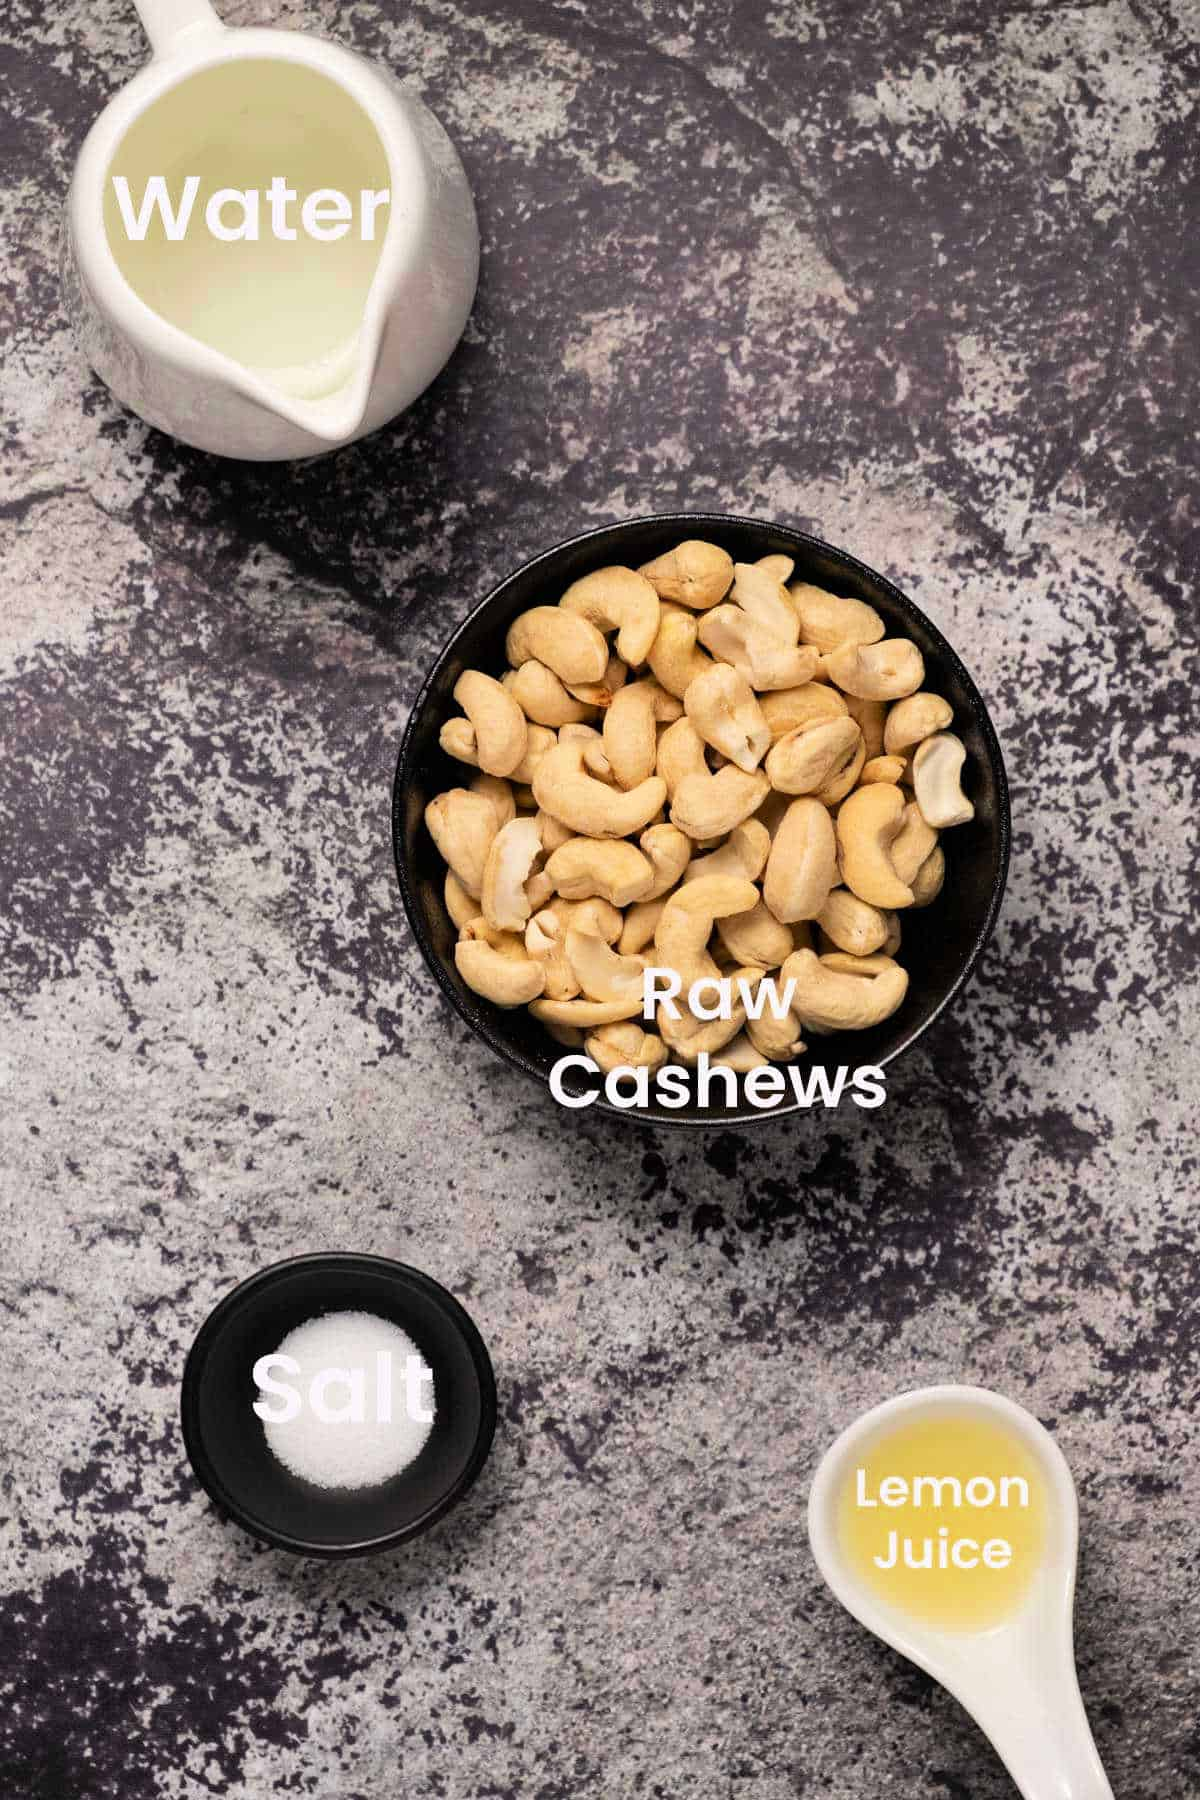 Photo of the ingredients needed to make cashew cream